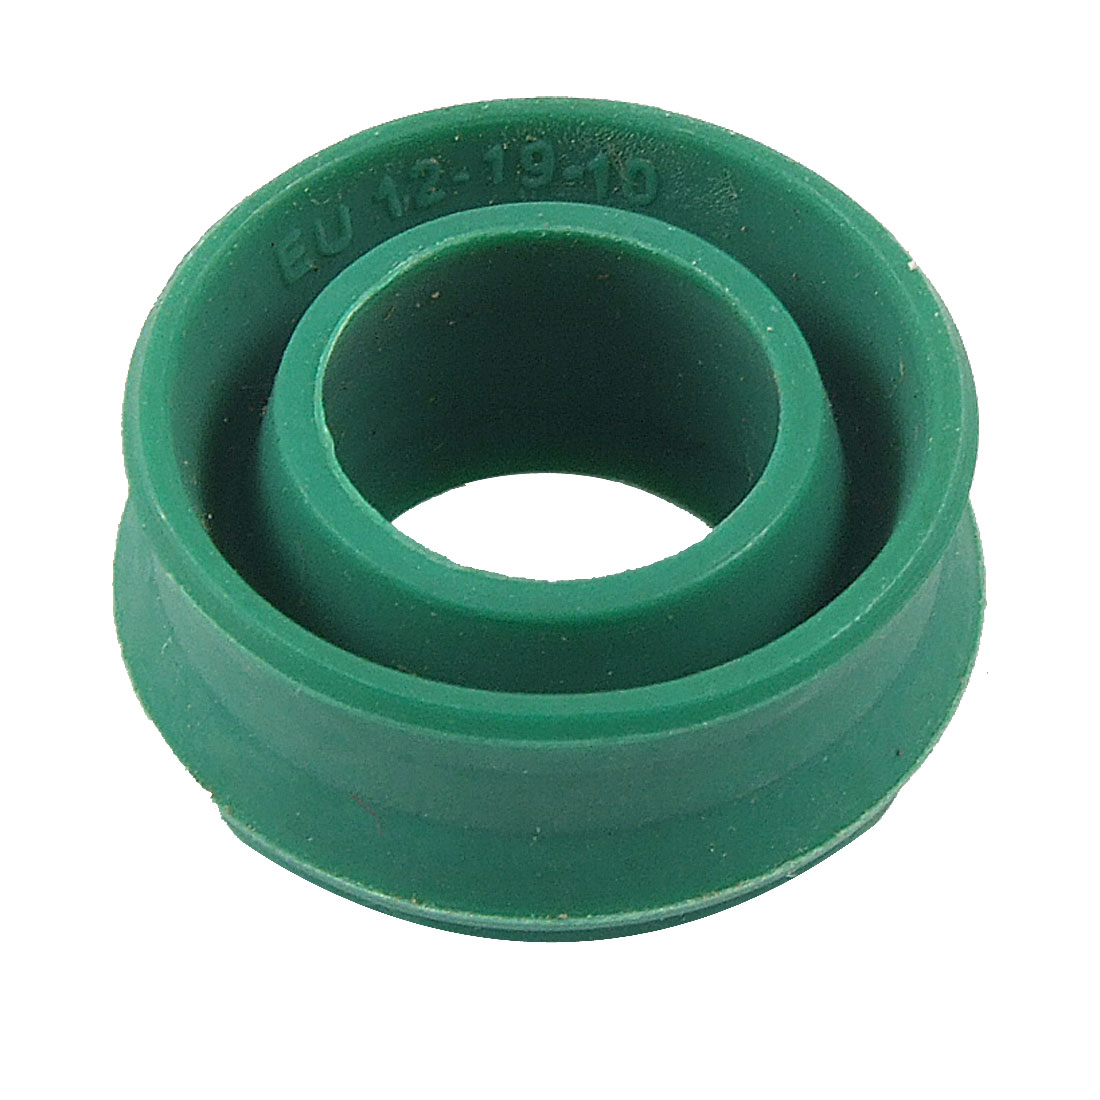 12x19x10mm Pneumatic PU Oil Seal for Rotary Shaft Axle